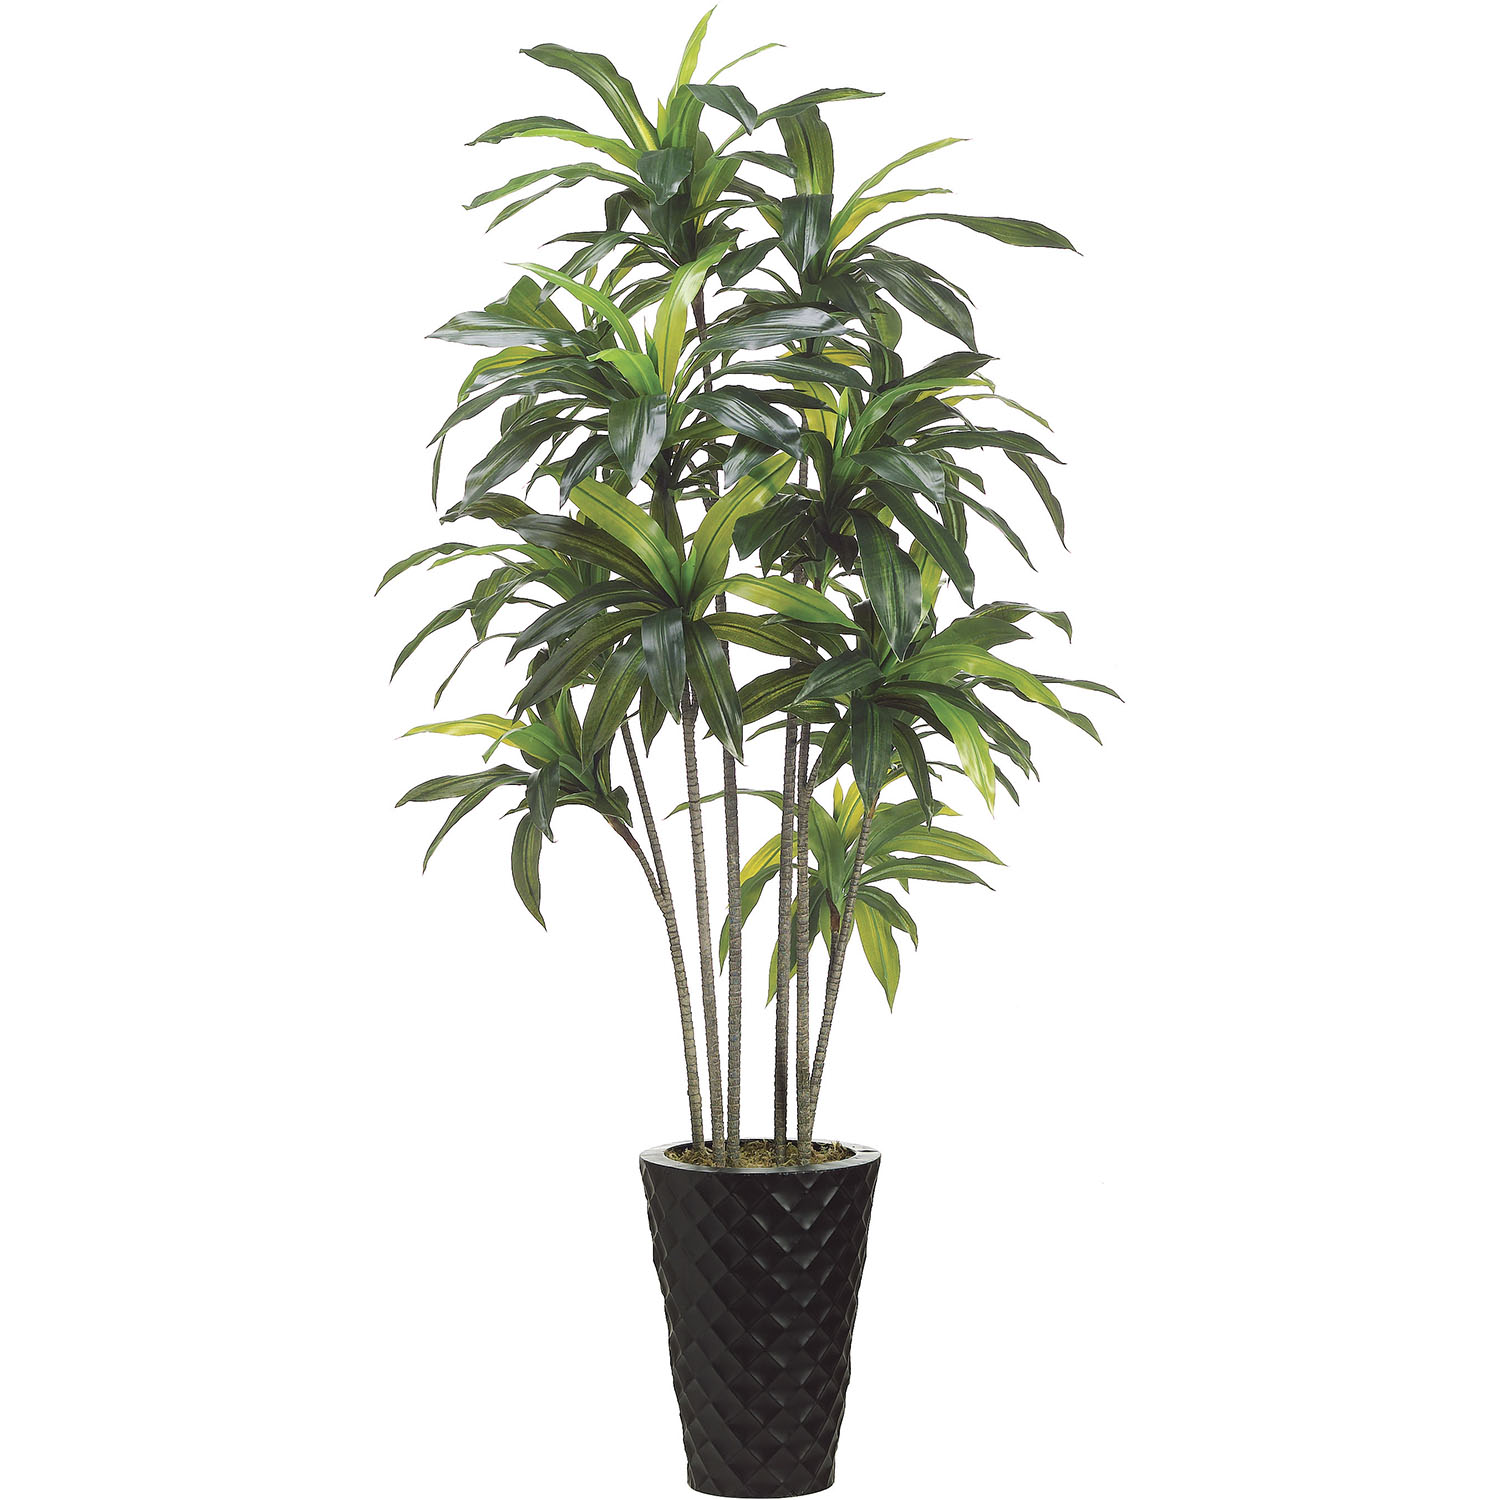 Select Exotic-Artificial-Dracaena-Tree-Metal-Container Product Picture 901